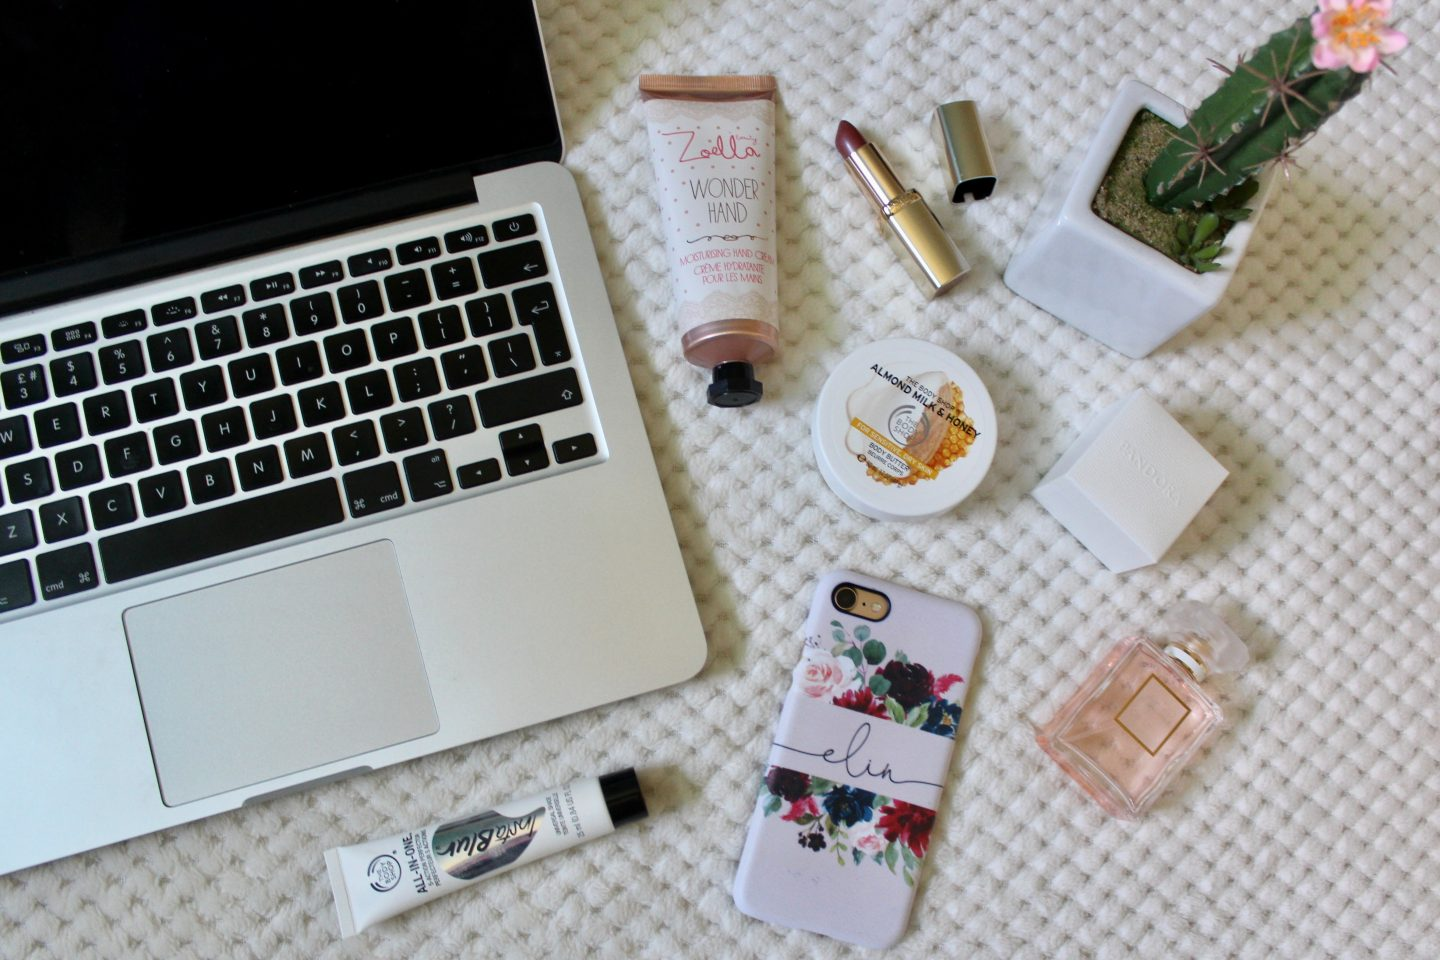 A photo of a macbook keyboard with beauty products around it and my phone which has a pink case and my name on it